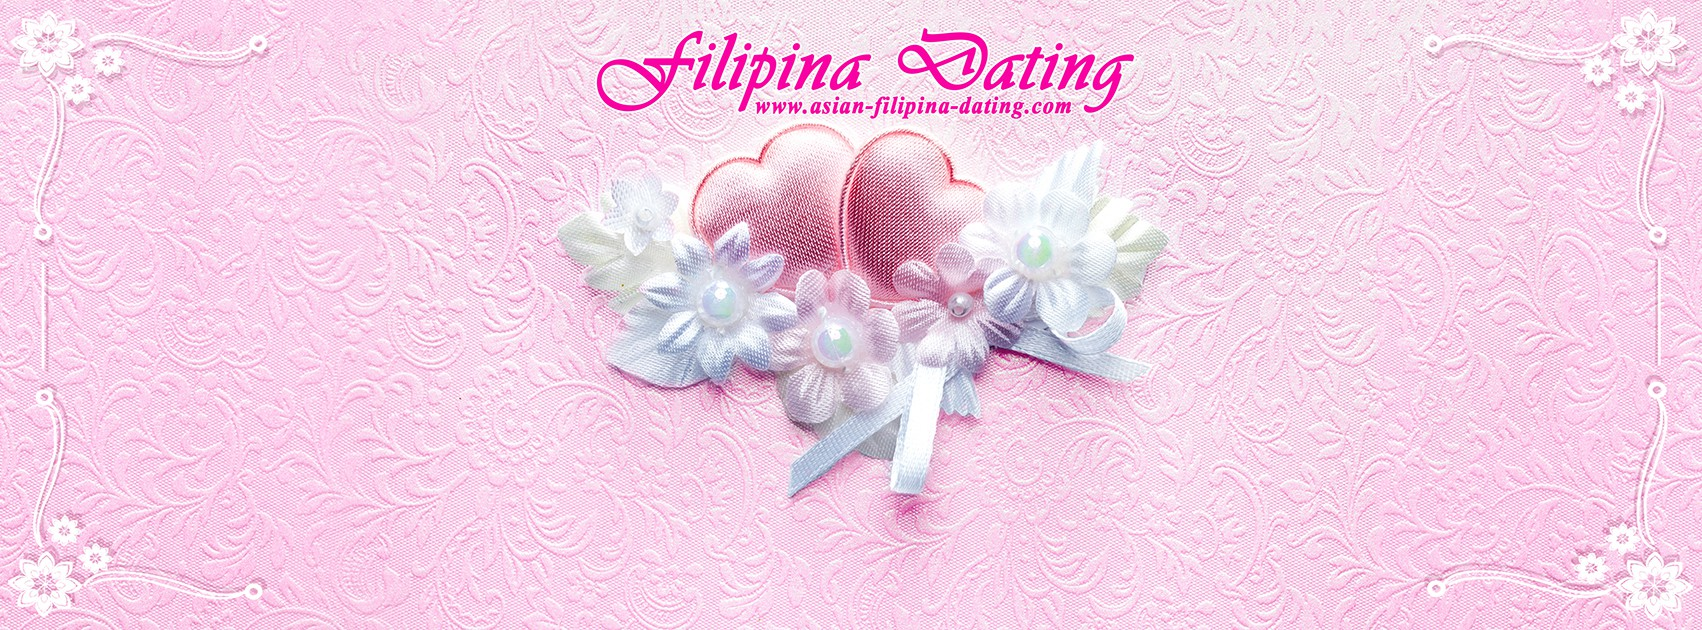 Facebook page for Filipina Dating Site